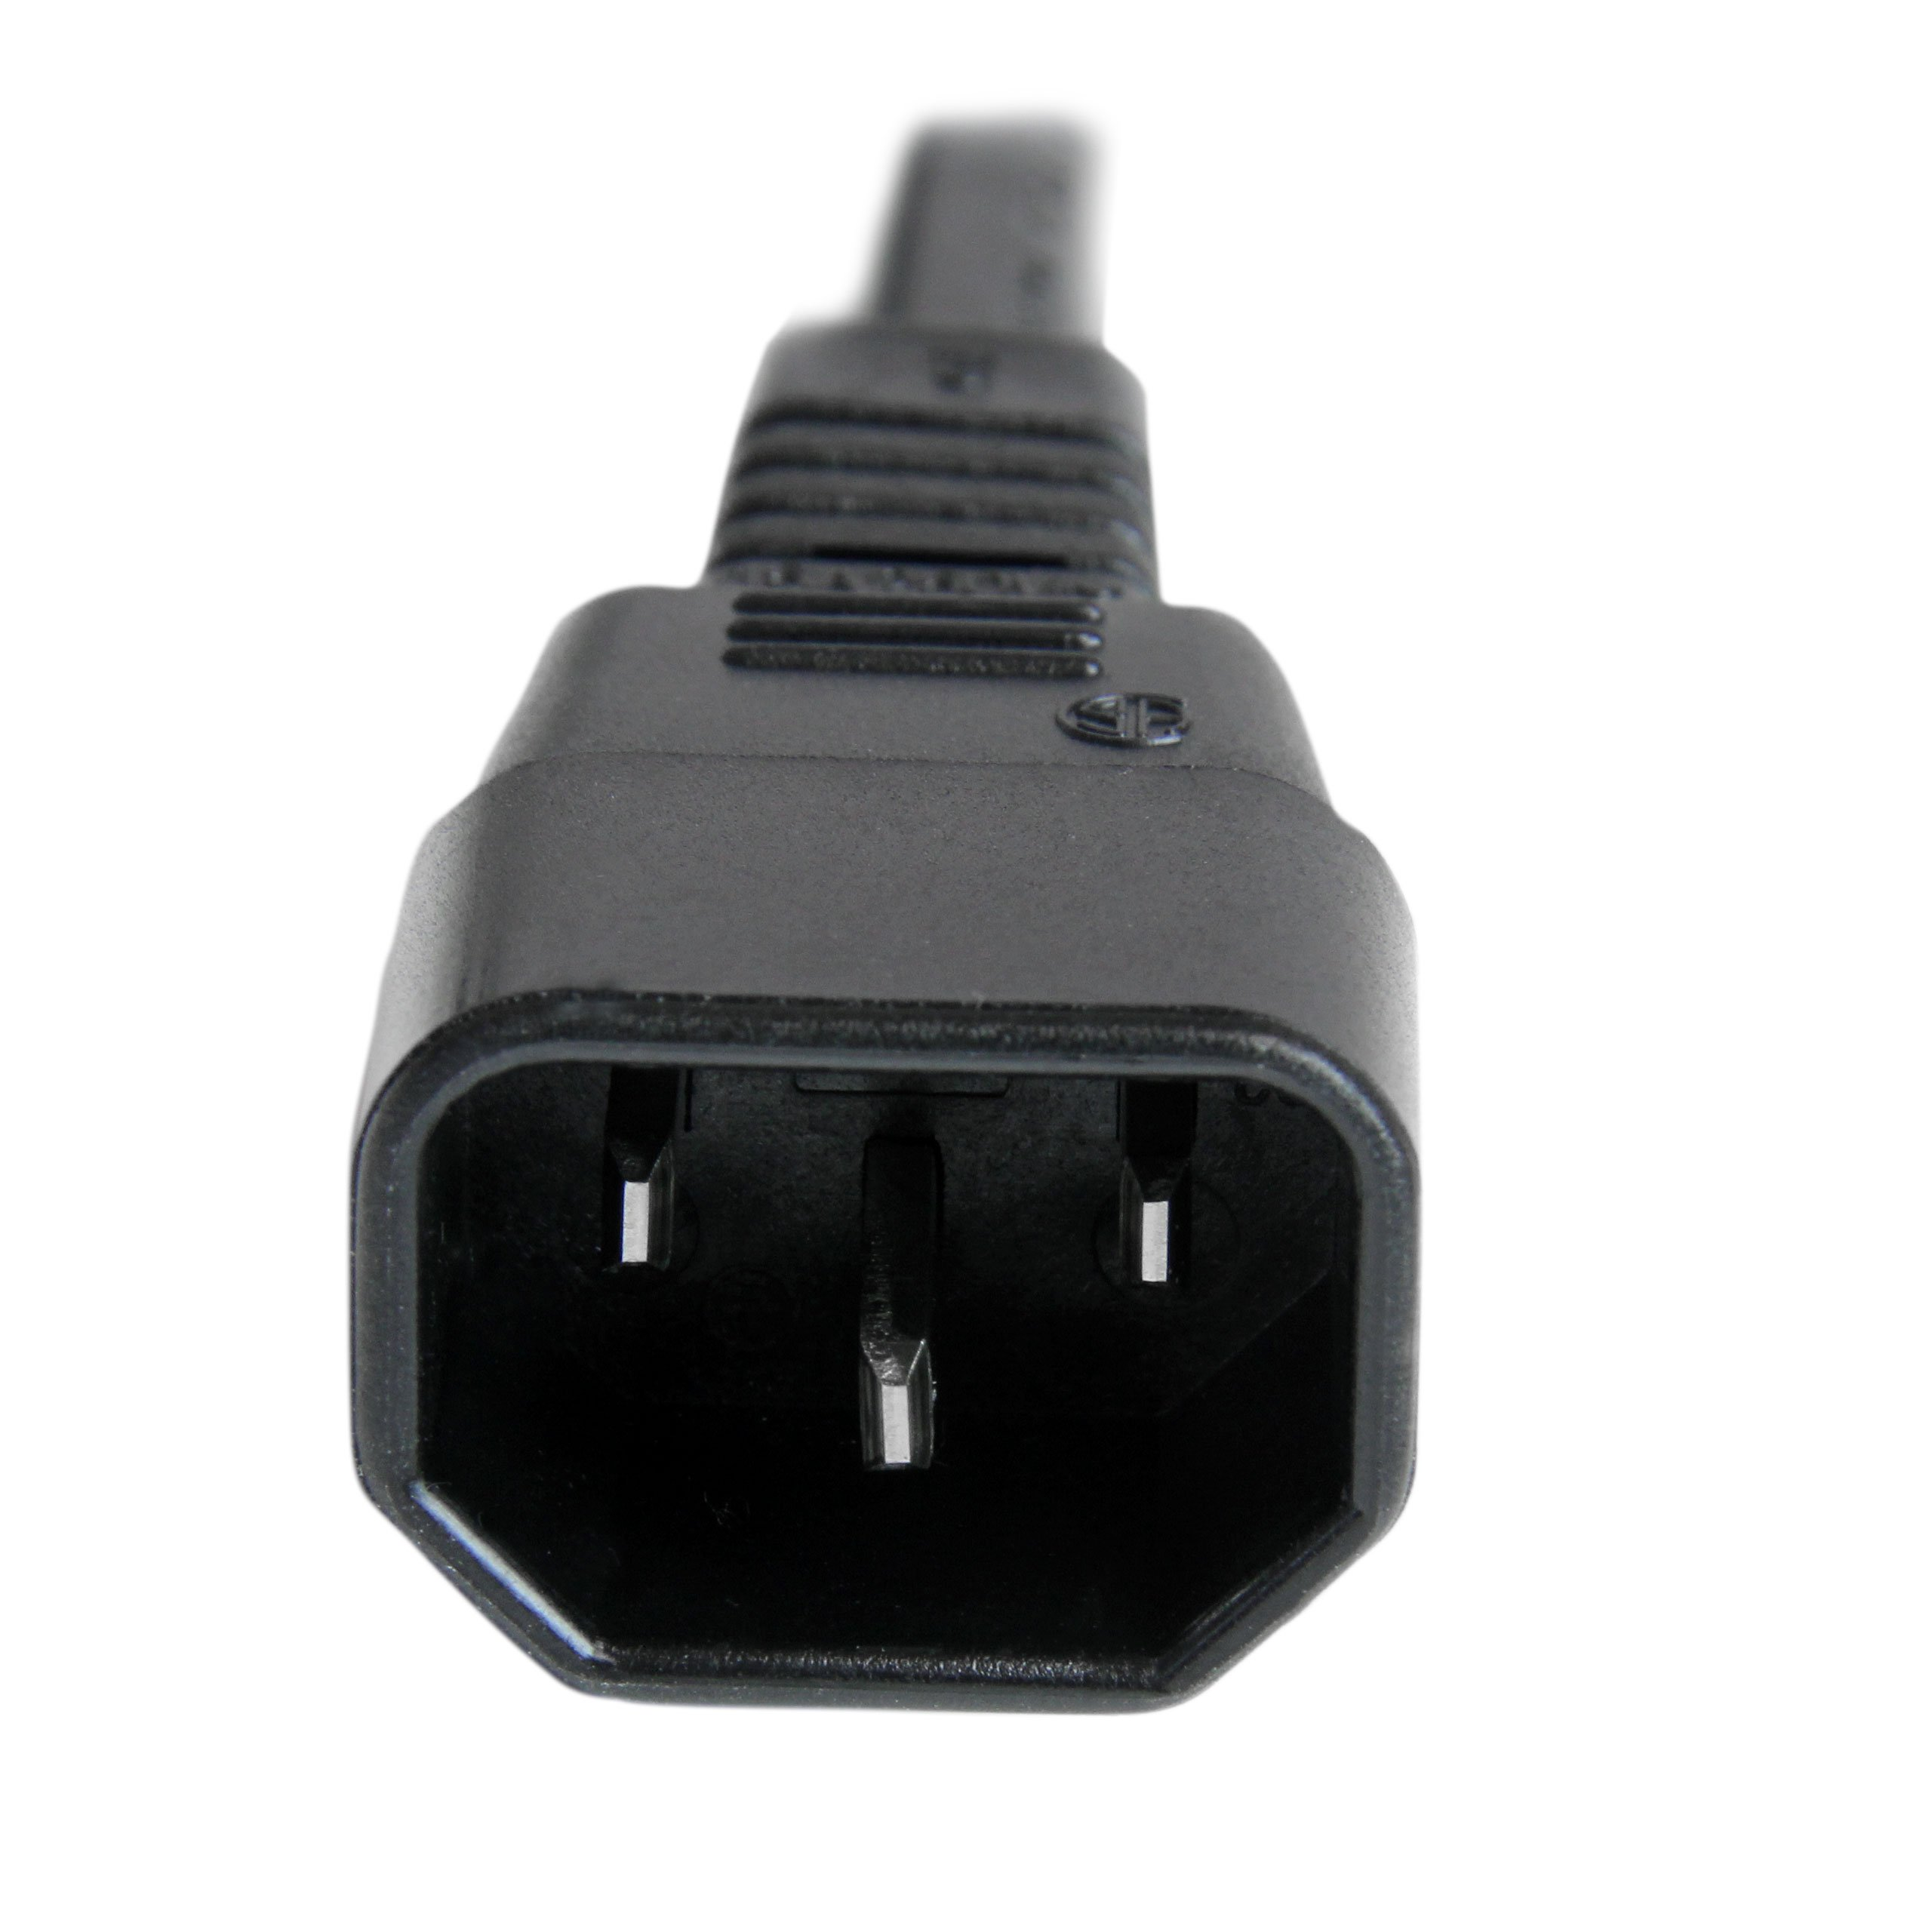 6 ft 14 AWG Computer Power Cord - IEC C14 to IEC C15 - 6 foot C14 to C15 Power Cord Cable - 14AWG 250V at 15A by StarTech (Image #3)